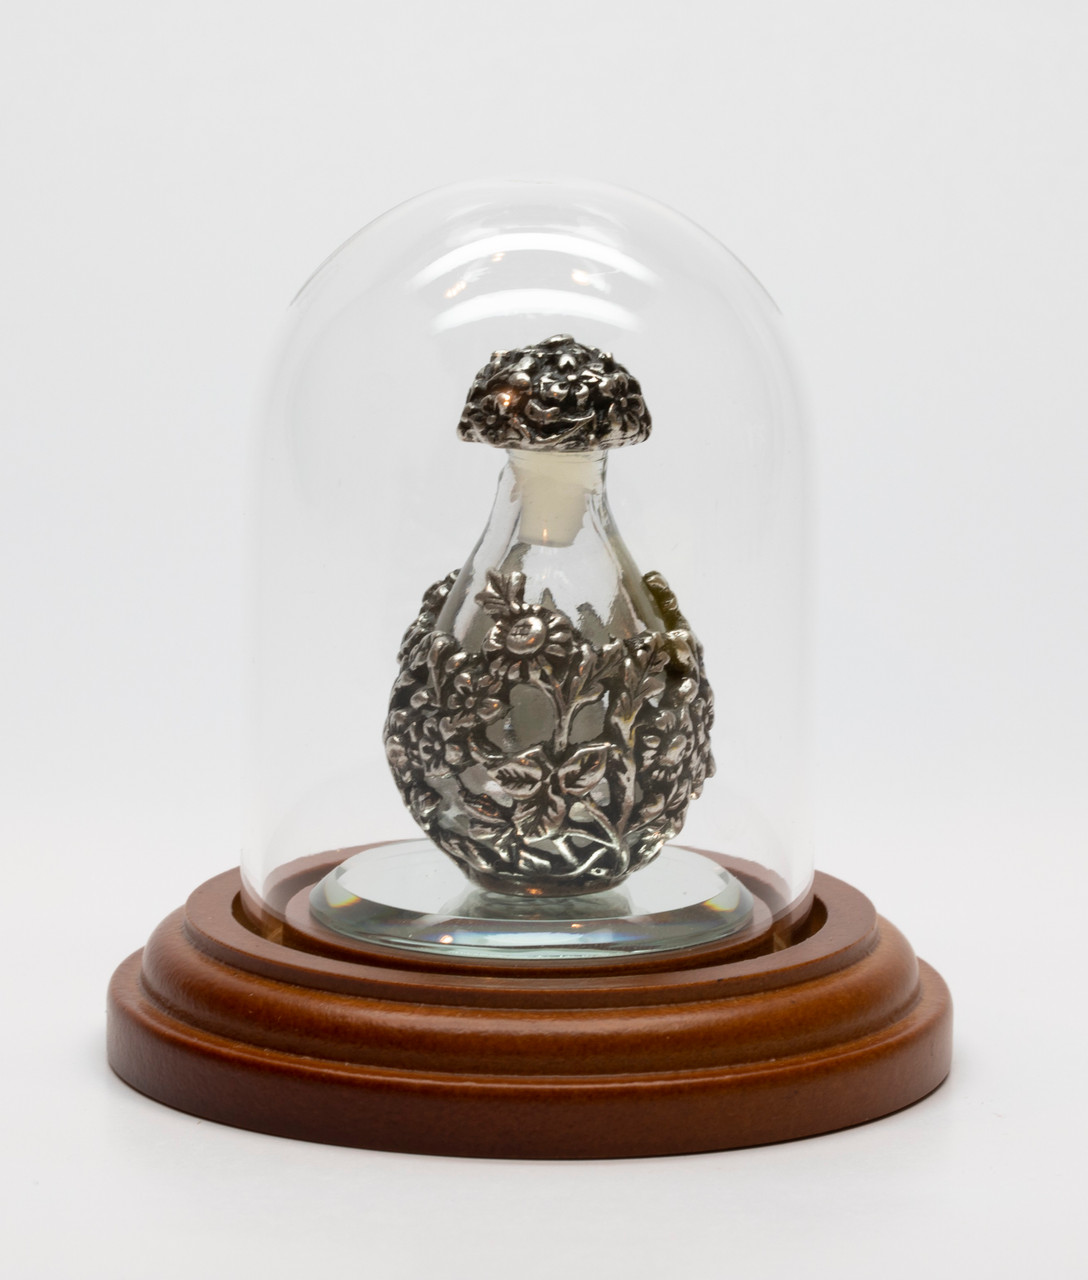 "Copper with Clear Glass Victorian Tear Bottle - shown with Optional Short Mini Dome on an Optional 1 1/2"" Mirror - Both Sold Separately"